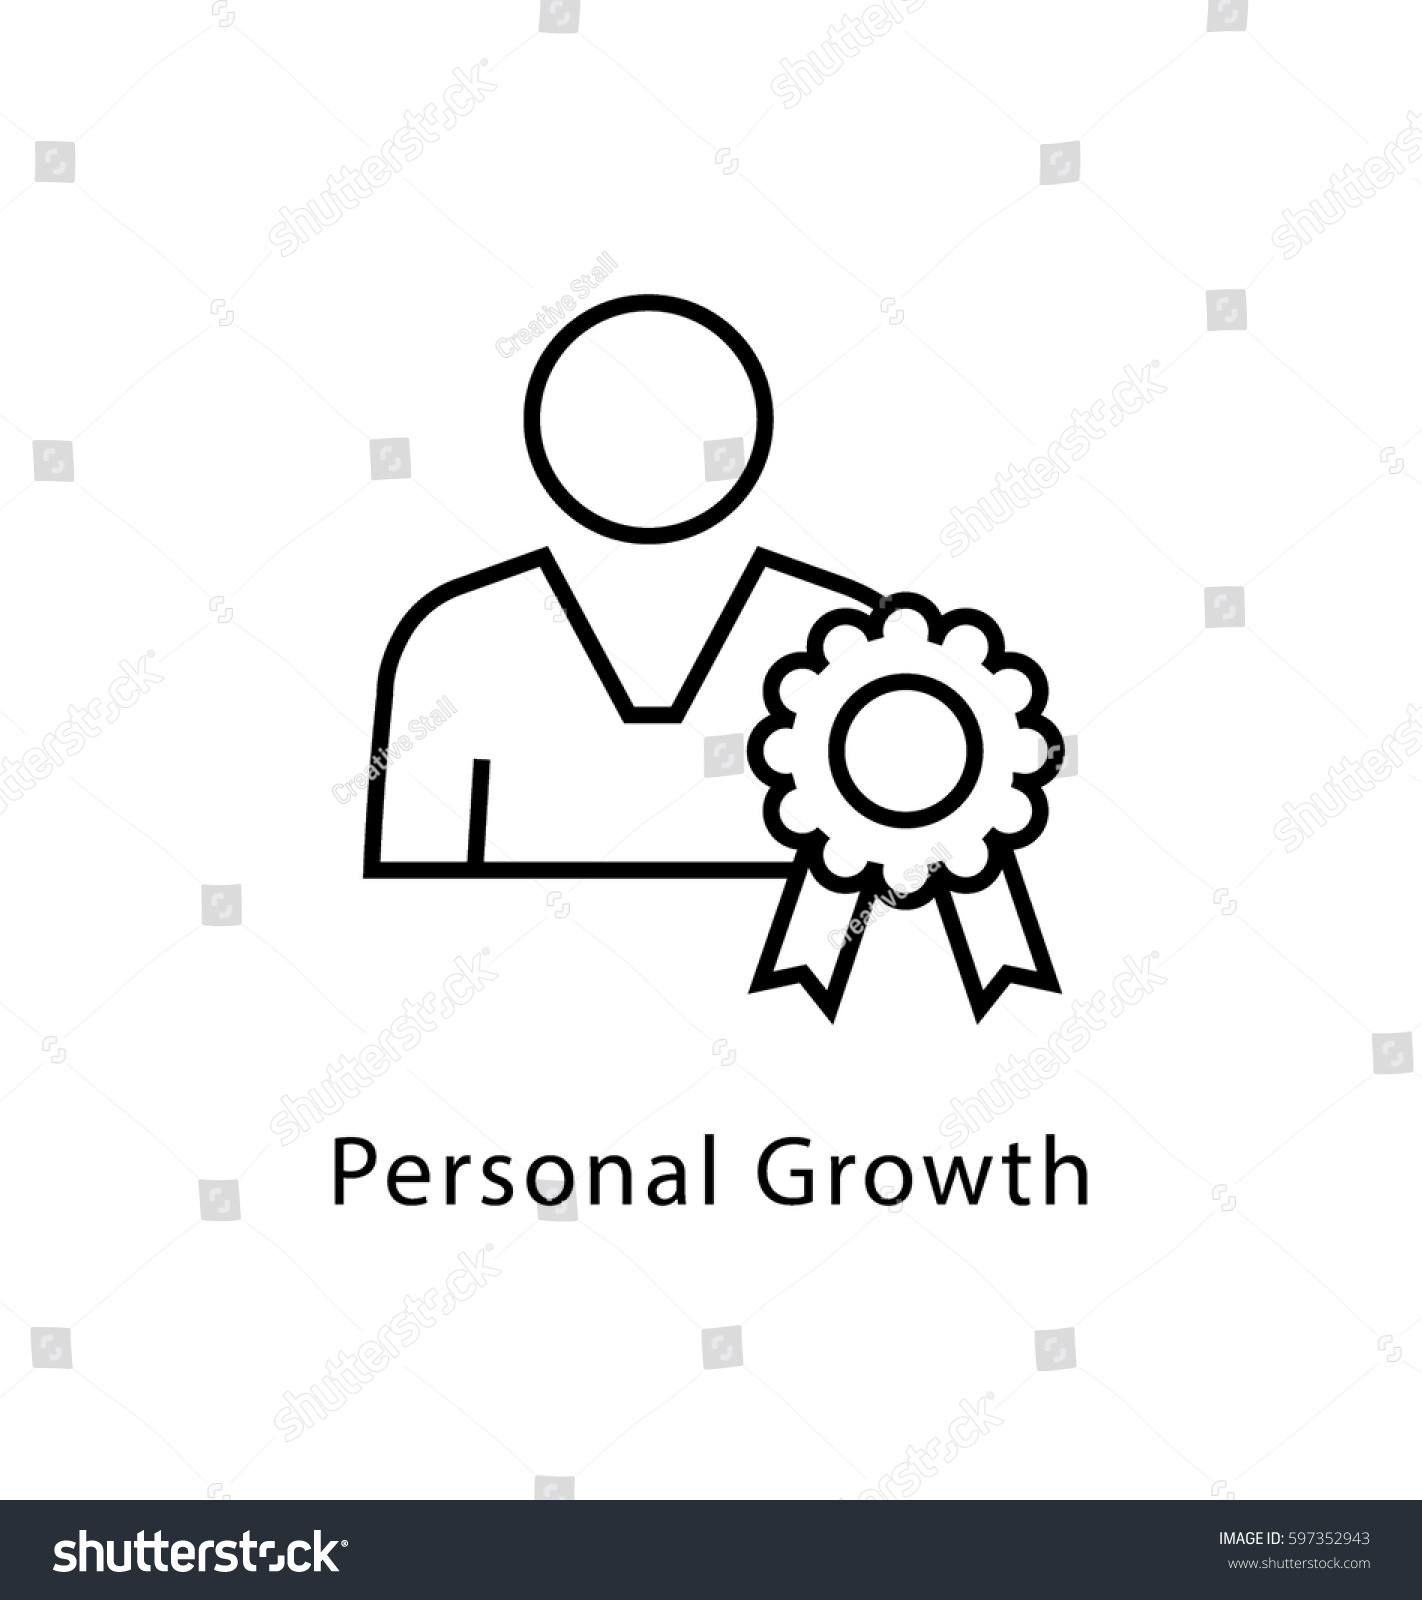 Personal Growth Vector Line Icon Stock Vector Royalty Free